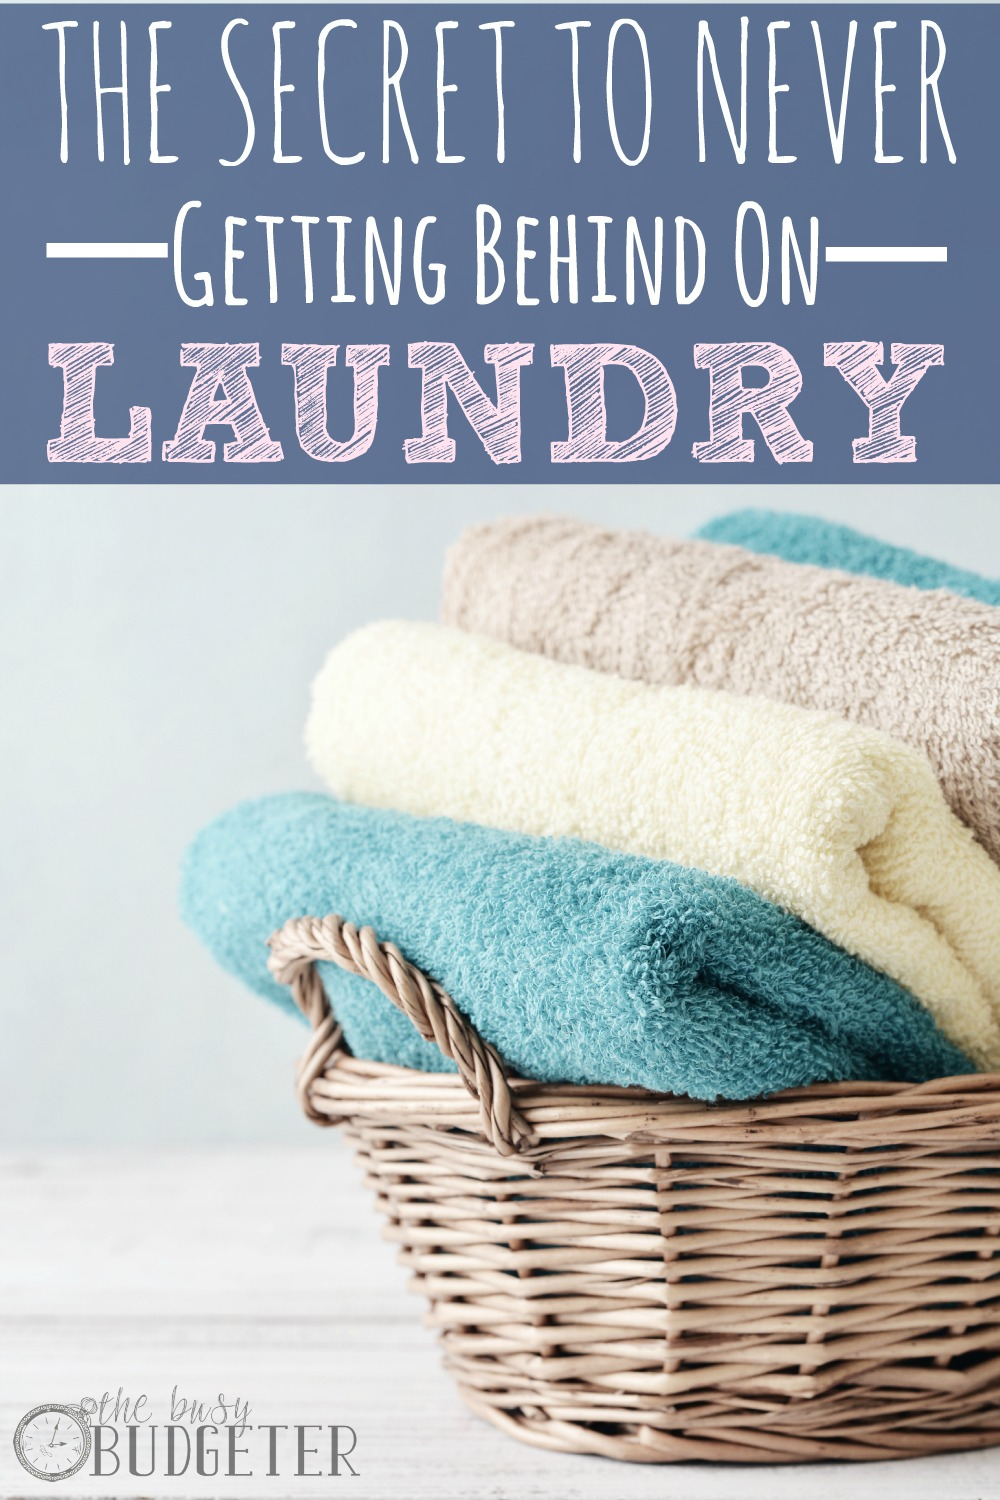 The simple secret to never getting behind on laundry again. What the... I'm floored. I tried this thinking it was silly and I went from having a hallway full of dirty clothes to just the next days laundry basket. It seems backwards to me, but if it works, it works! New laundry system!